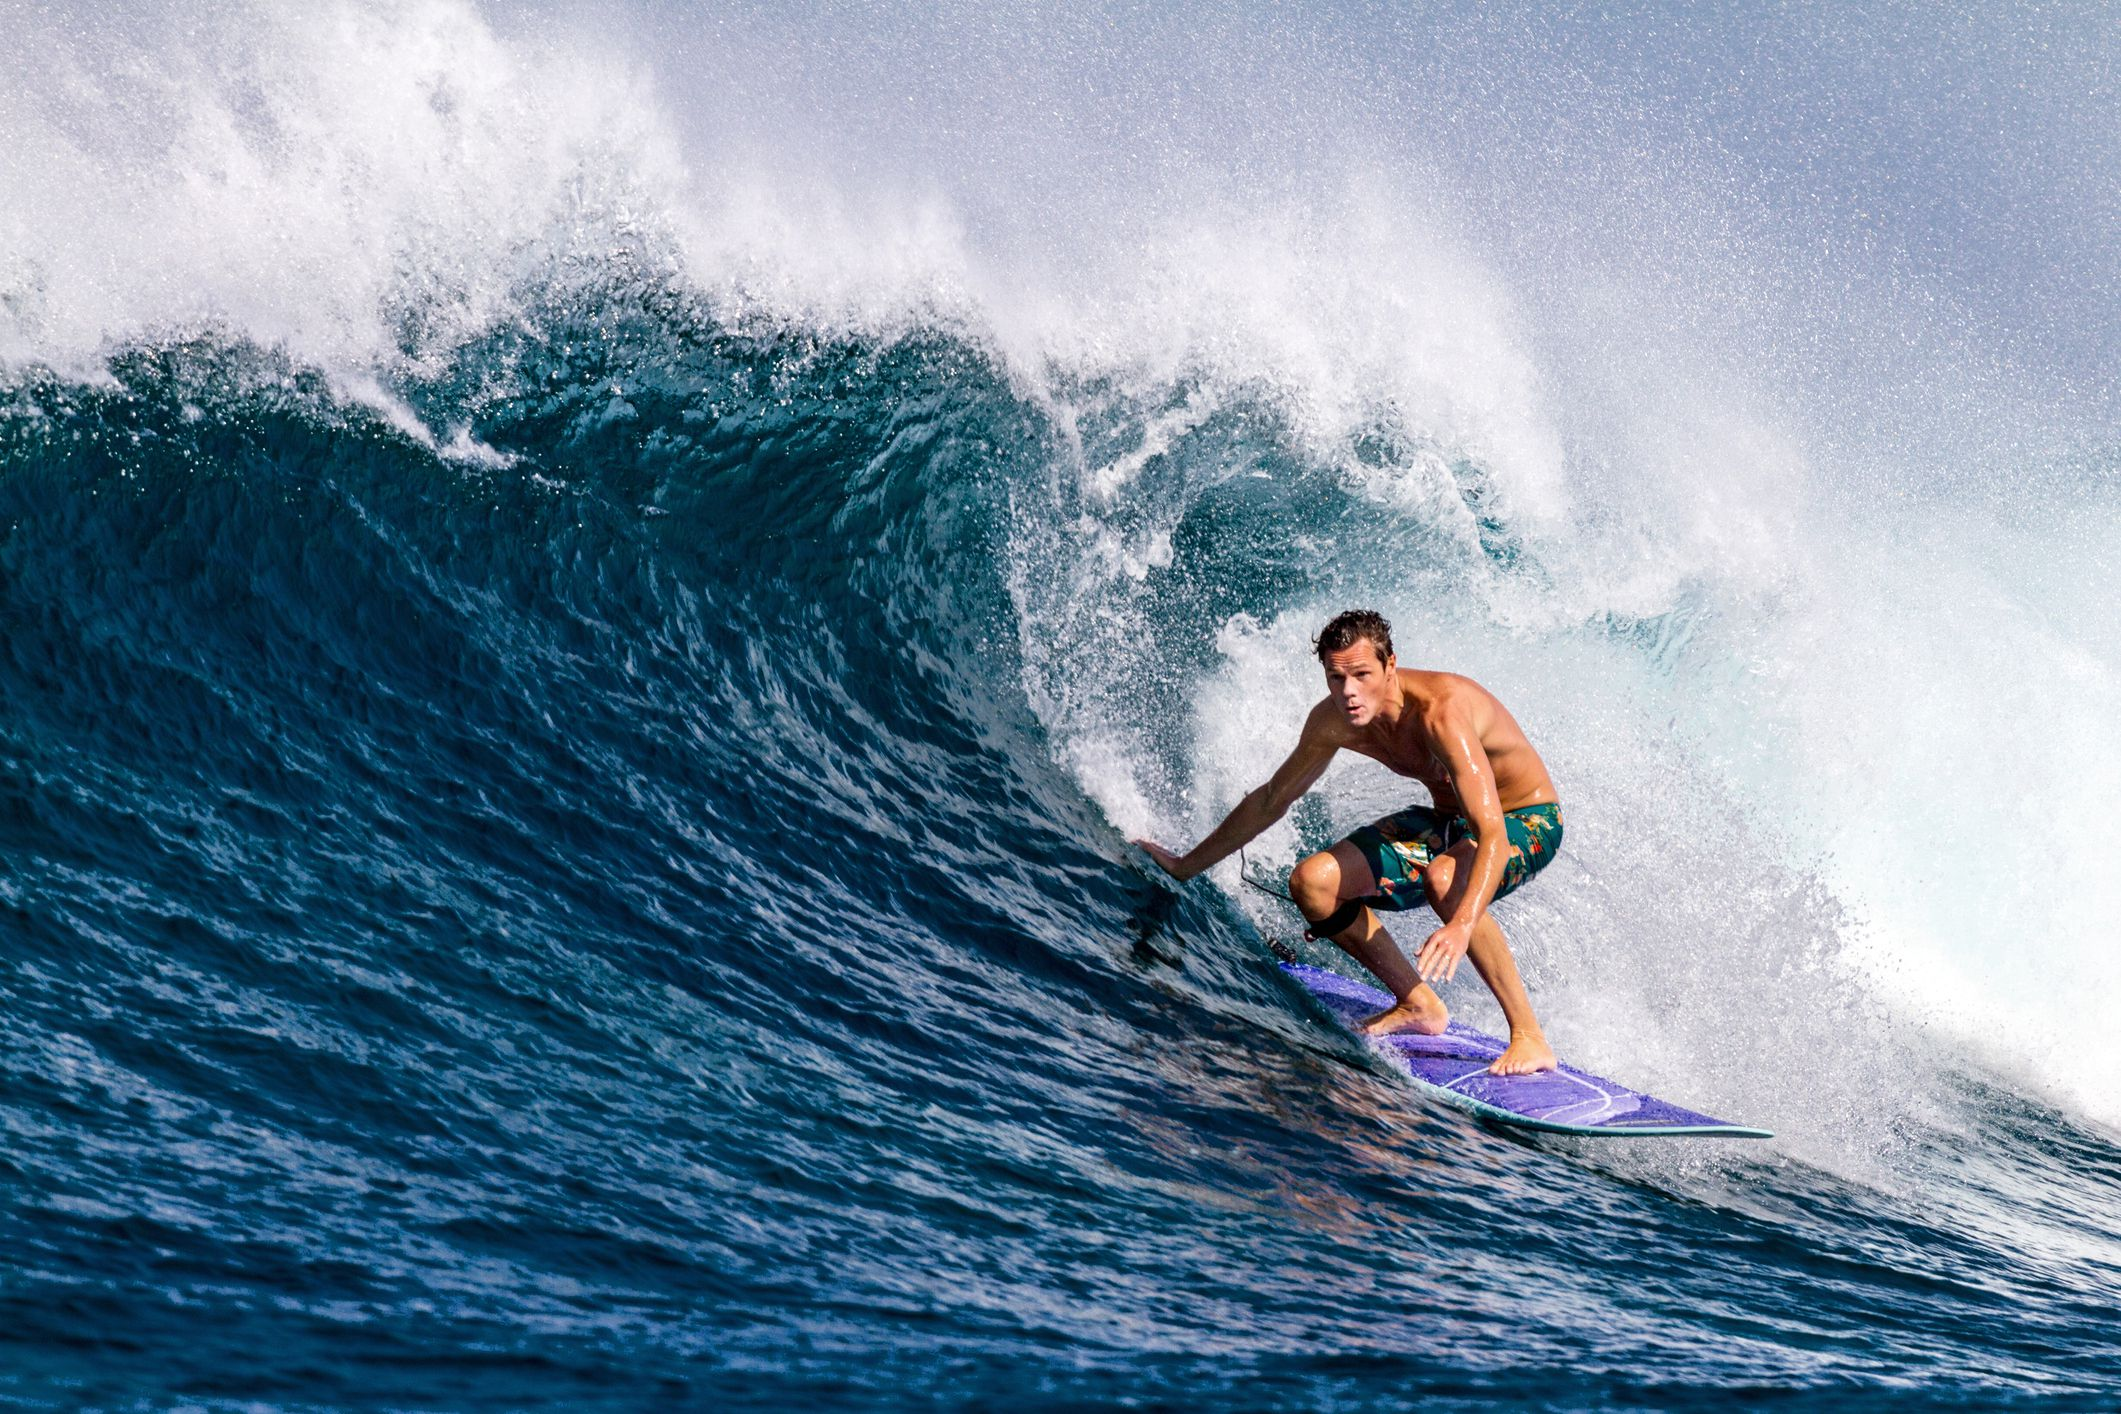 East Coast Auto >> A Top 10 List of South Africa's Best Surf Spots